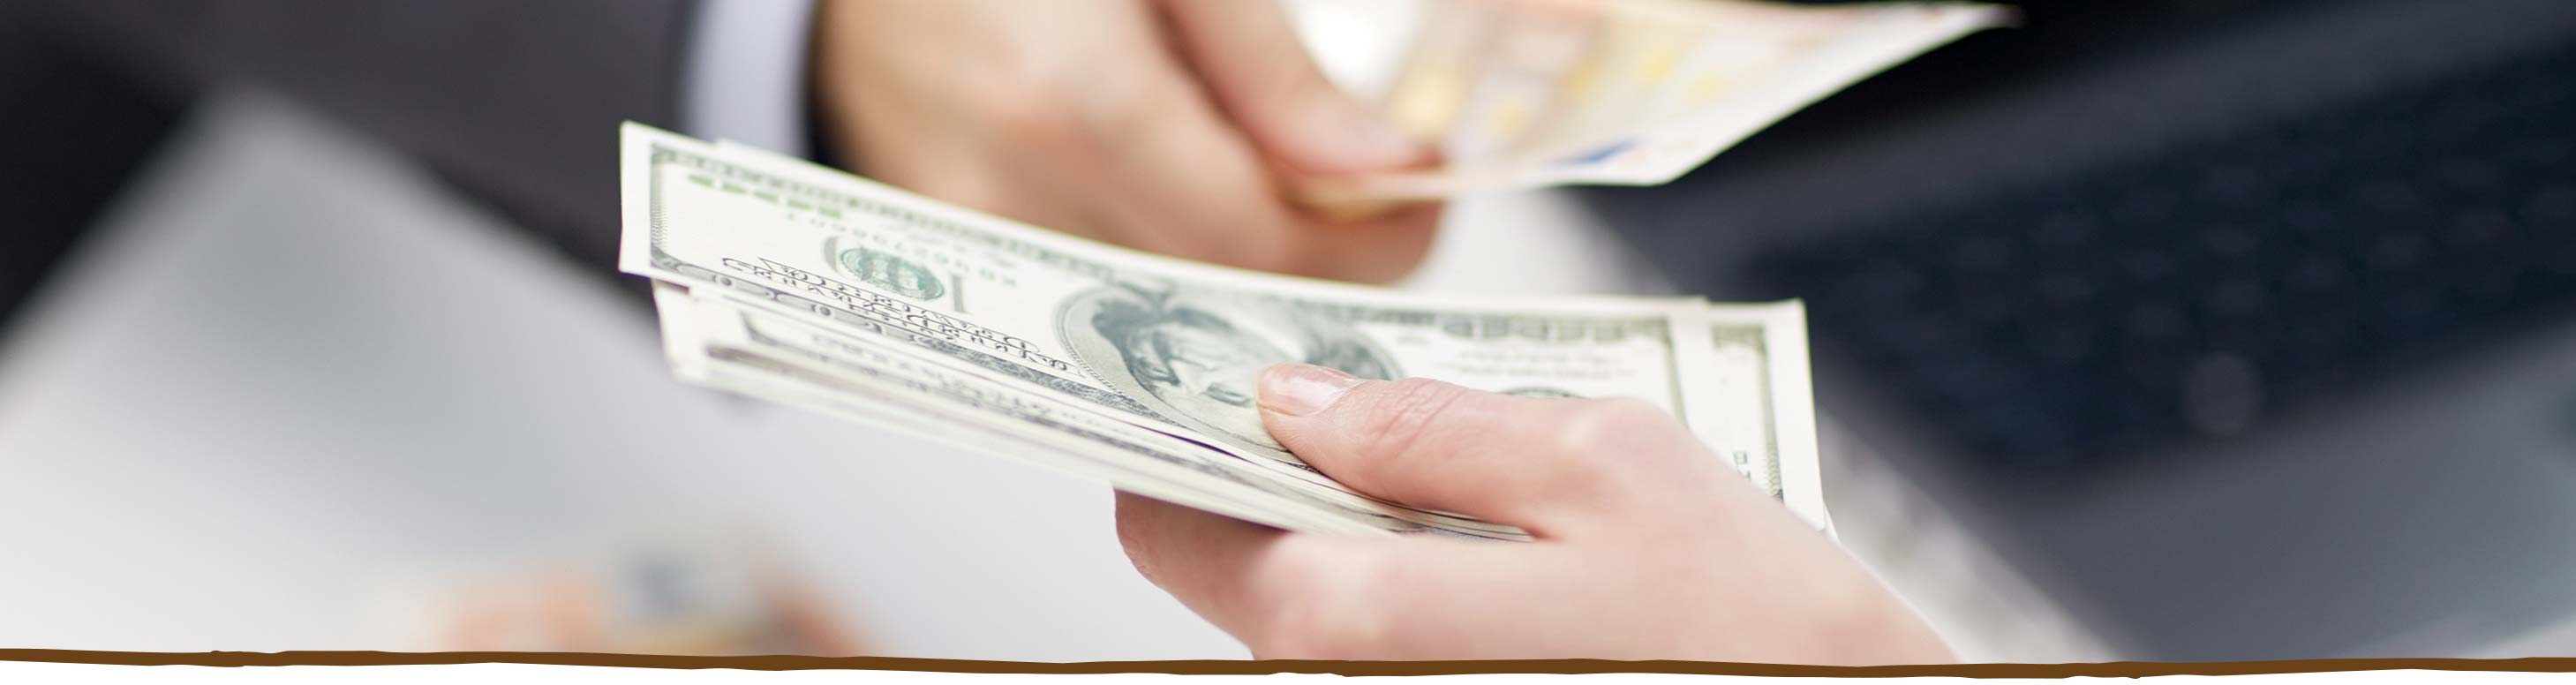 Foreign Currency Exchange | Hawaiian Financial Federal